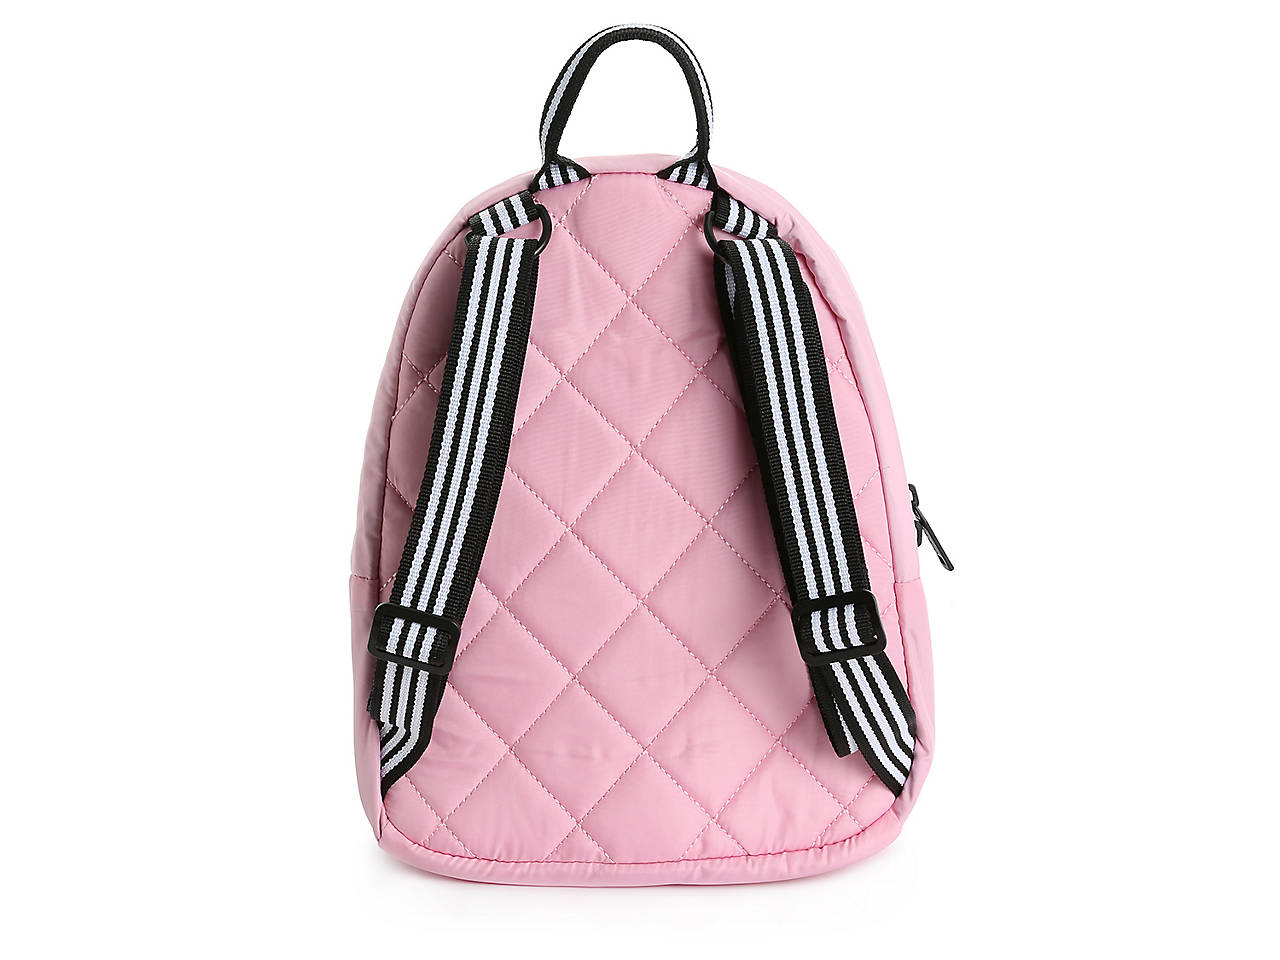 14a3ddfaa090 adidas Core Mini Backpack Women s Handbags   Accessories